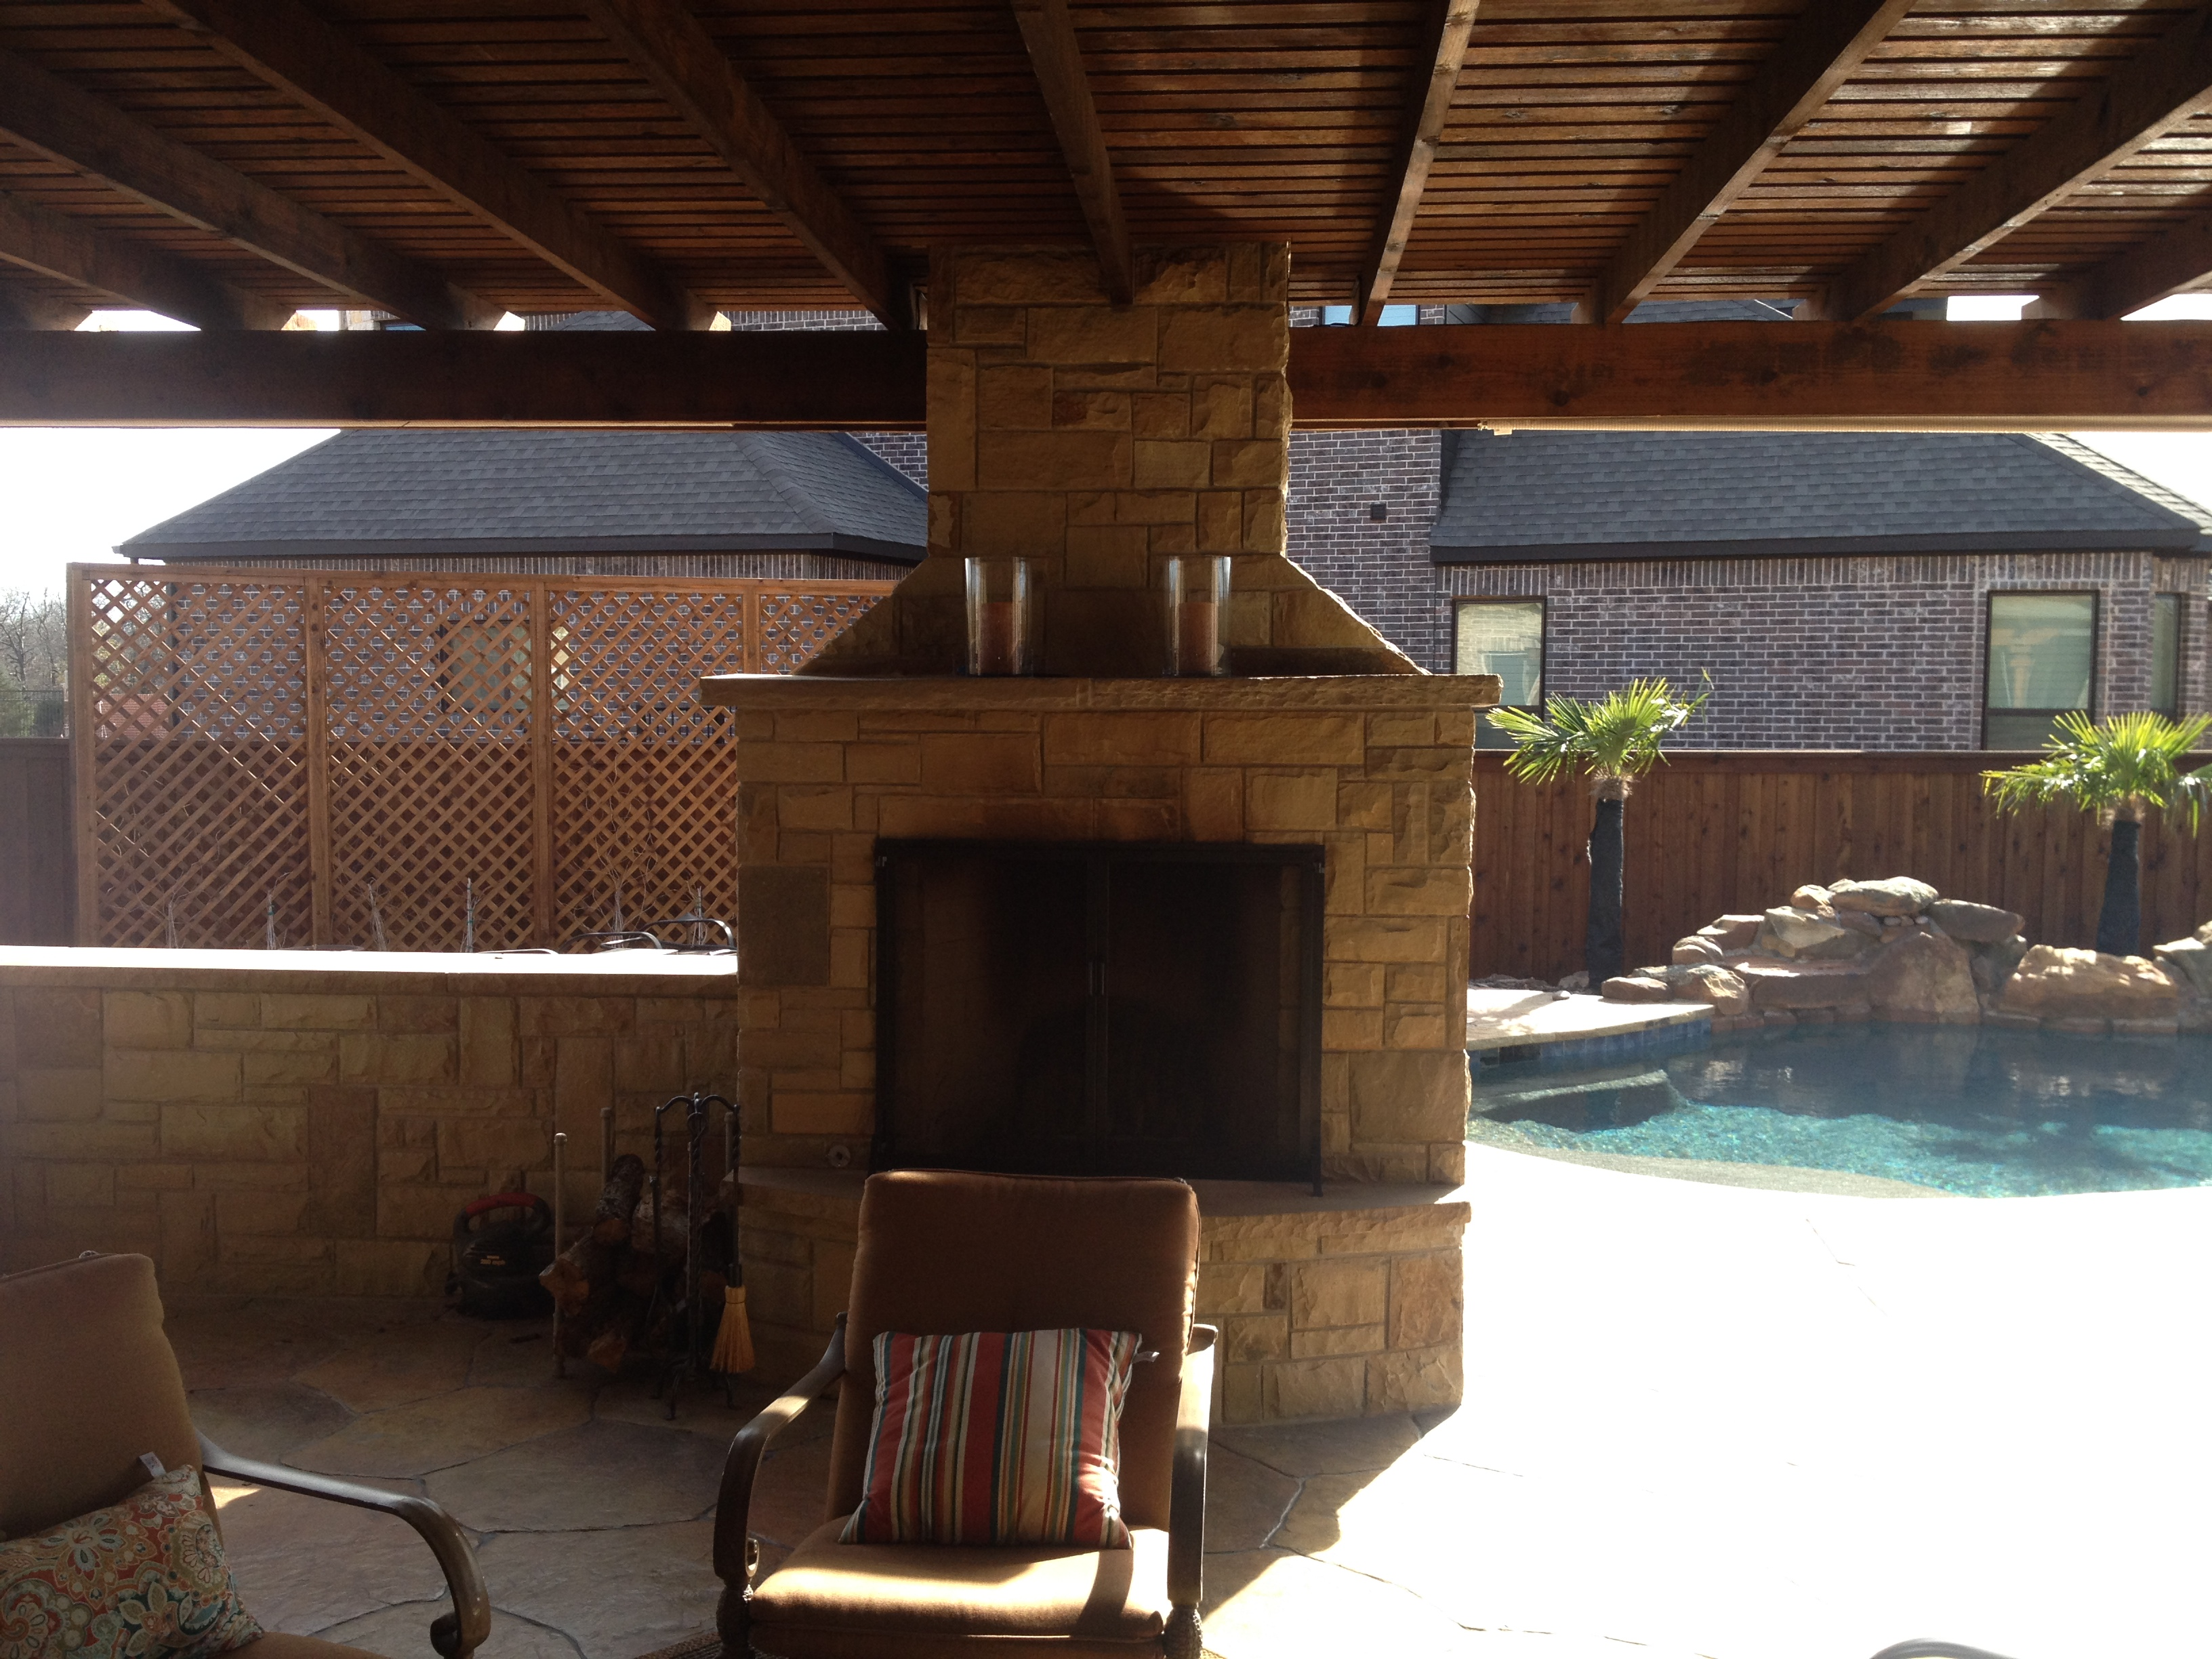 Outdoor Fireplaces Clarity Pools 469 323 6232 Serving Collin County